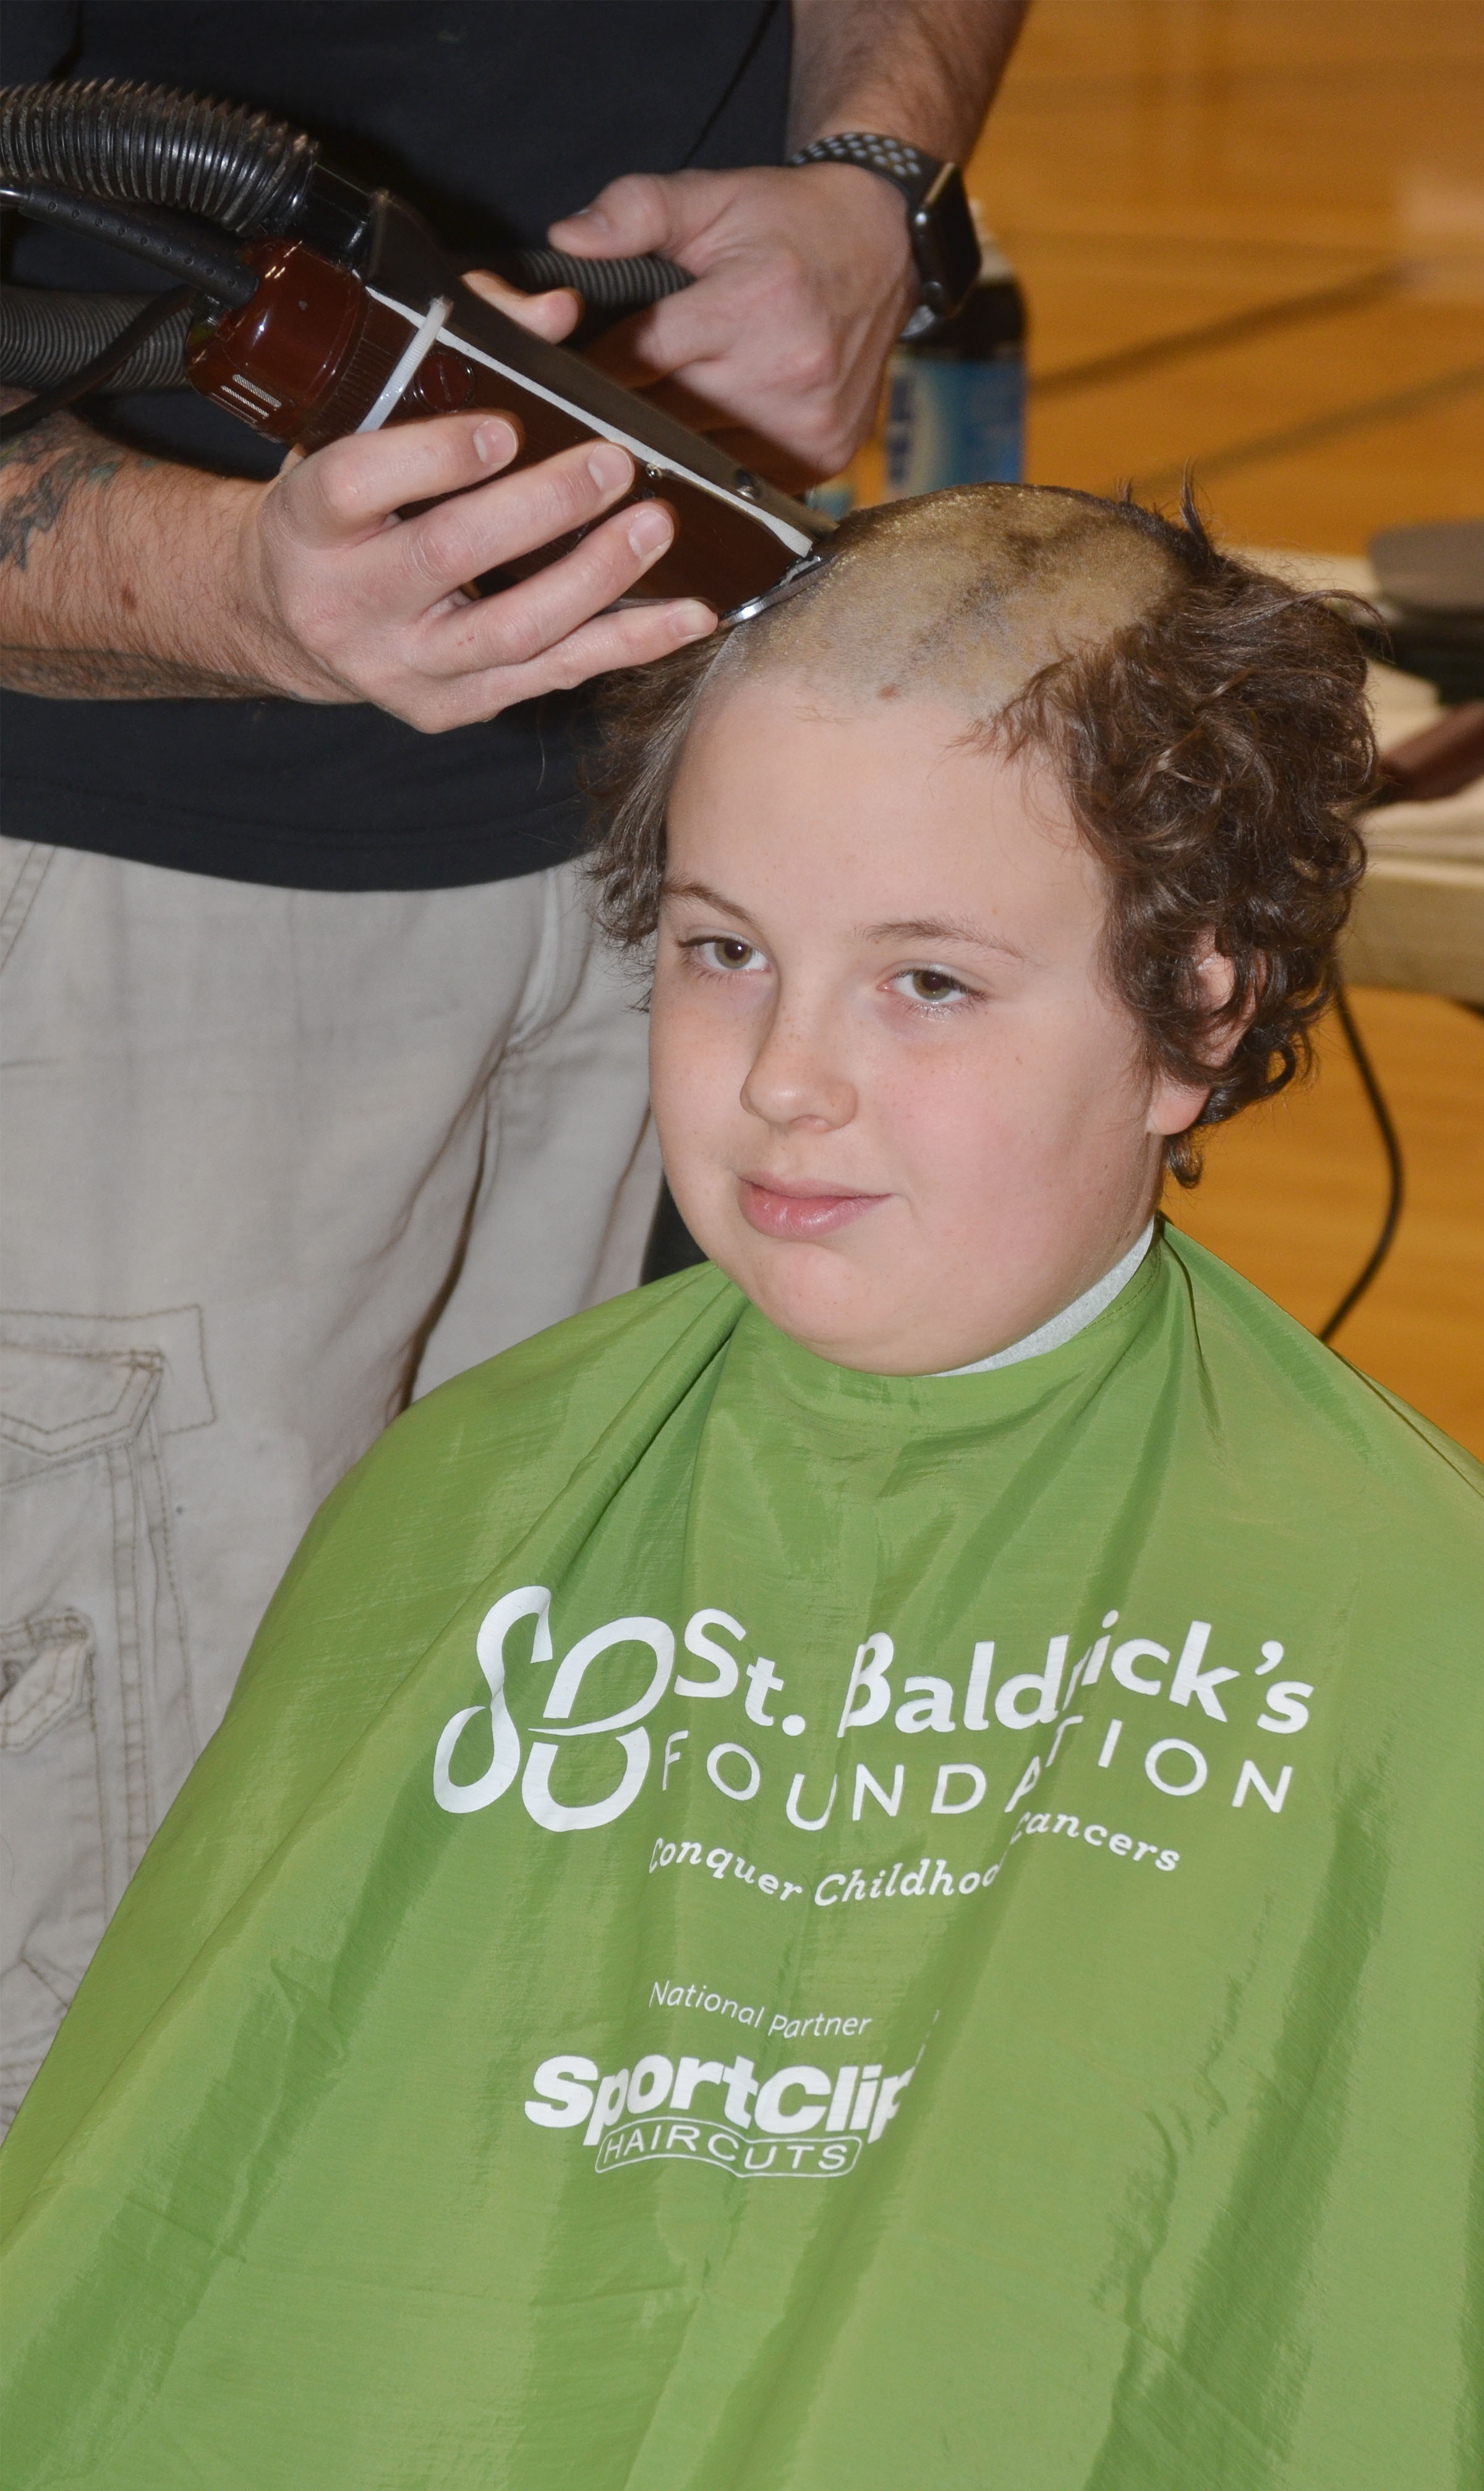 CMS fifth-grader Daniel Caton has his head shaved to raise money for children's cancer research.